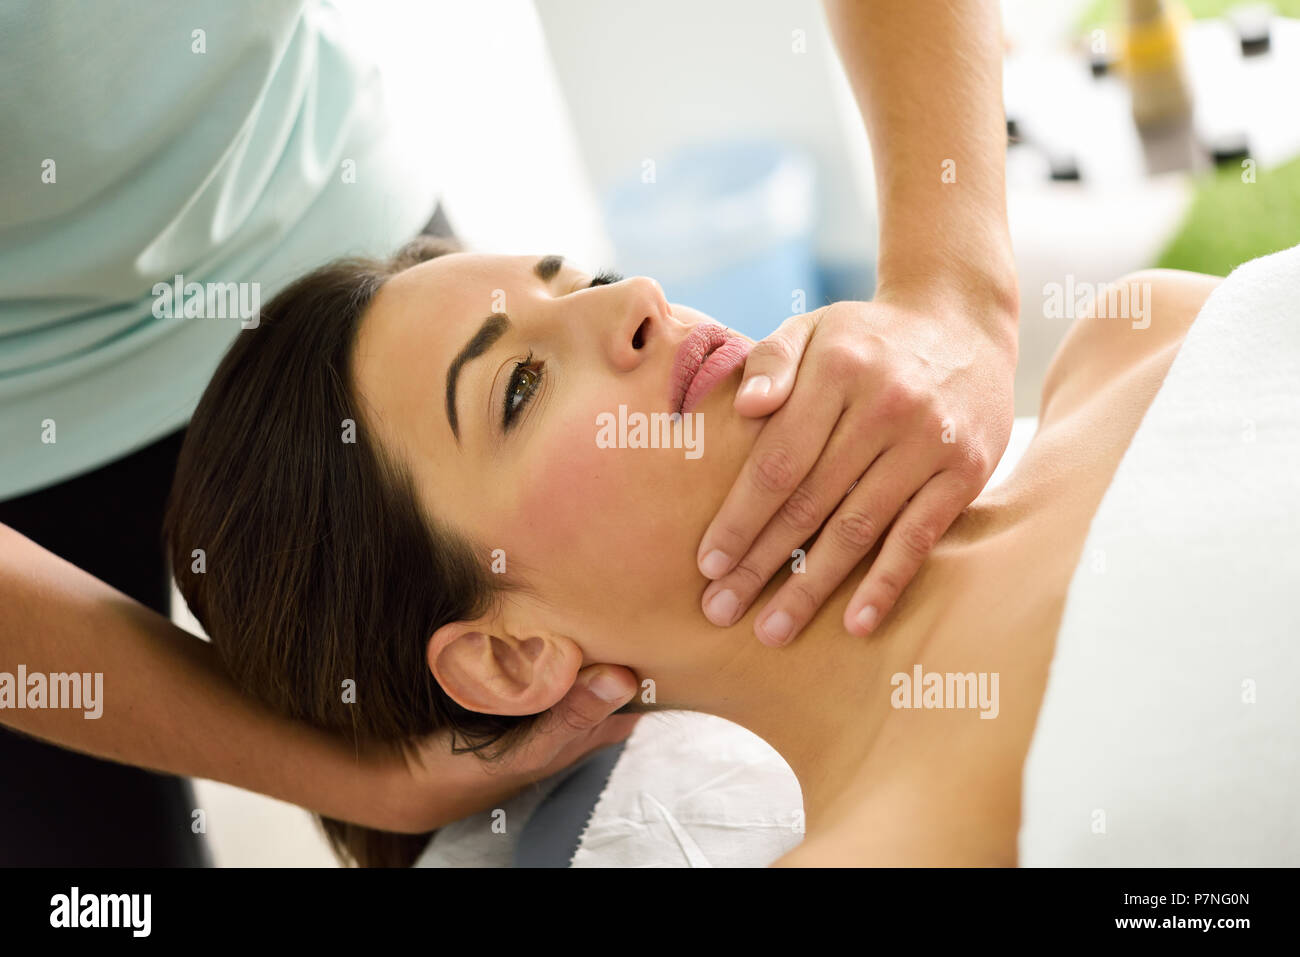 Young caucasian woman receiving a head massage in a spa center. Female patient is receiving treatment by professional therapist. - Stock Image